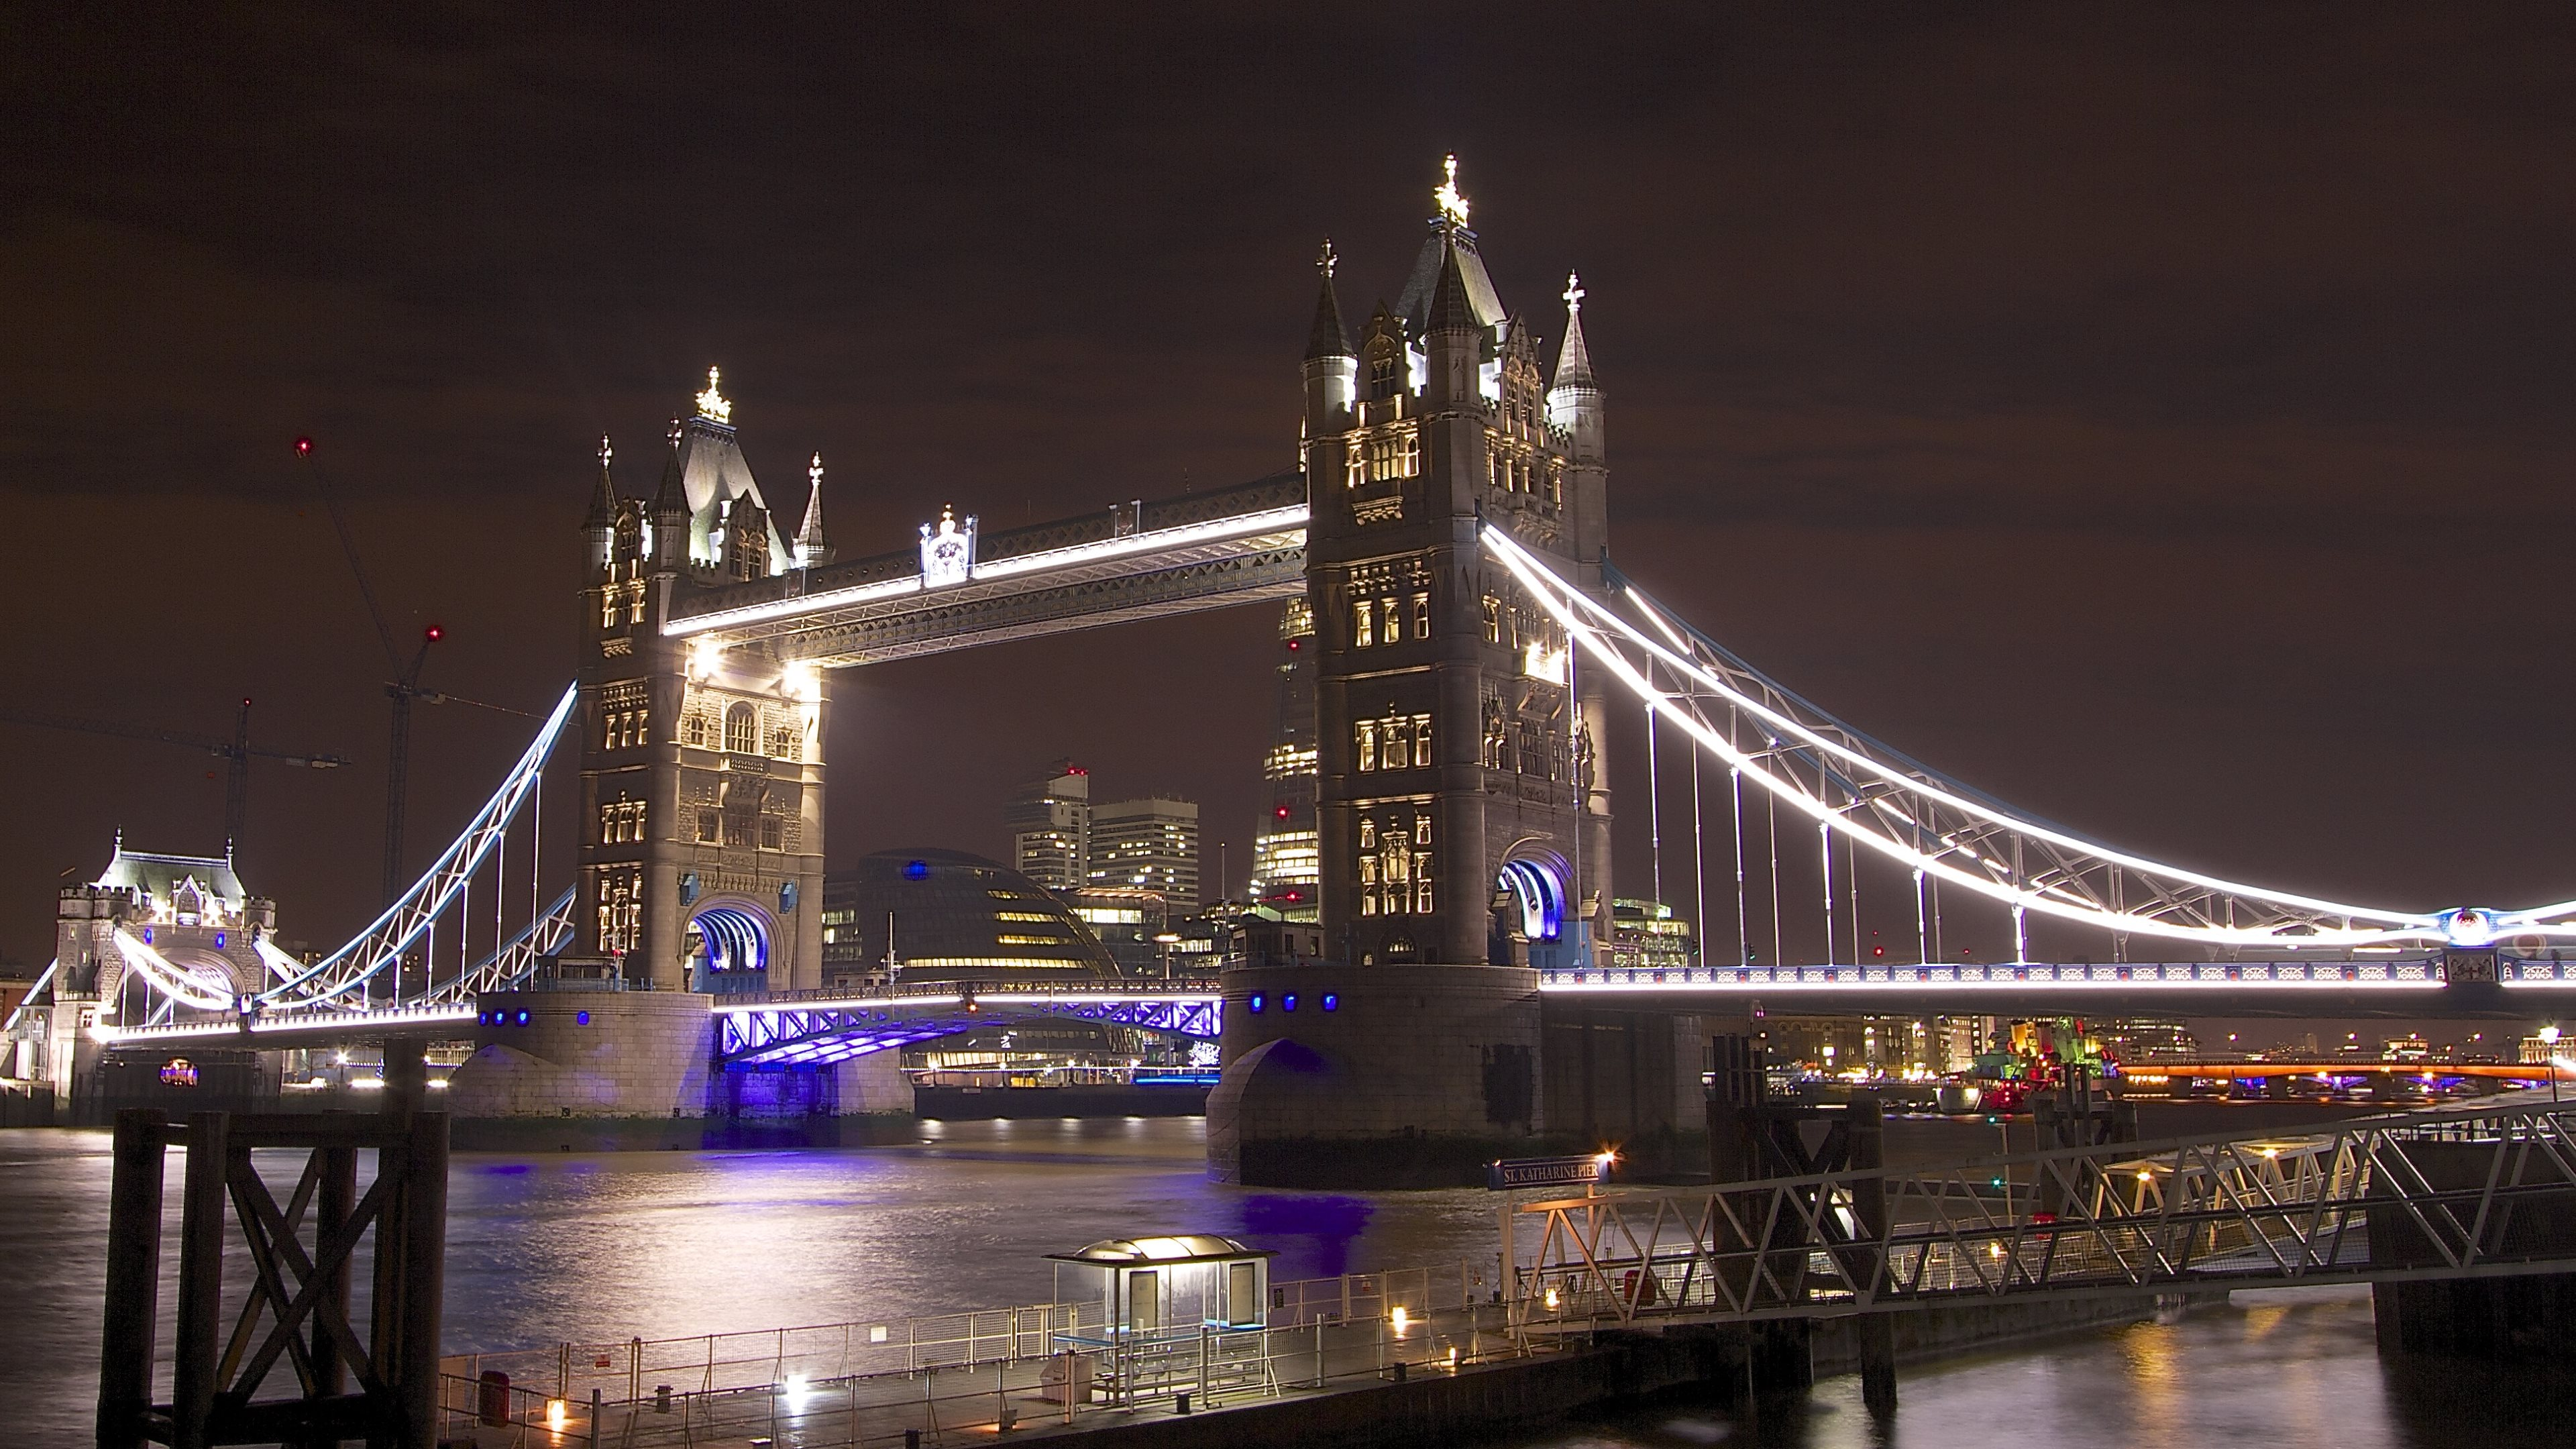 London Bridge Wallpapers #3H28D62, 1.32 Mb - 4USkY